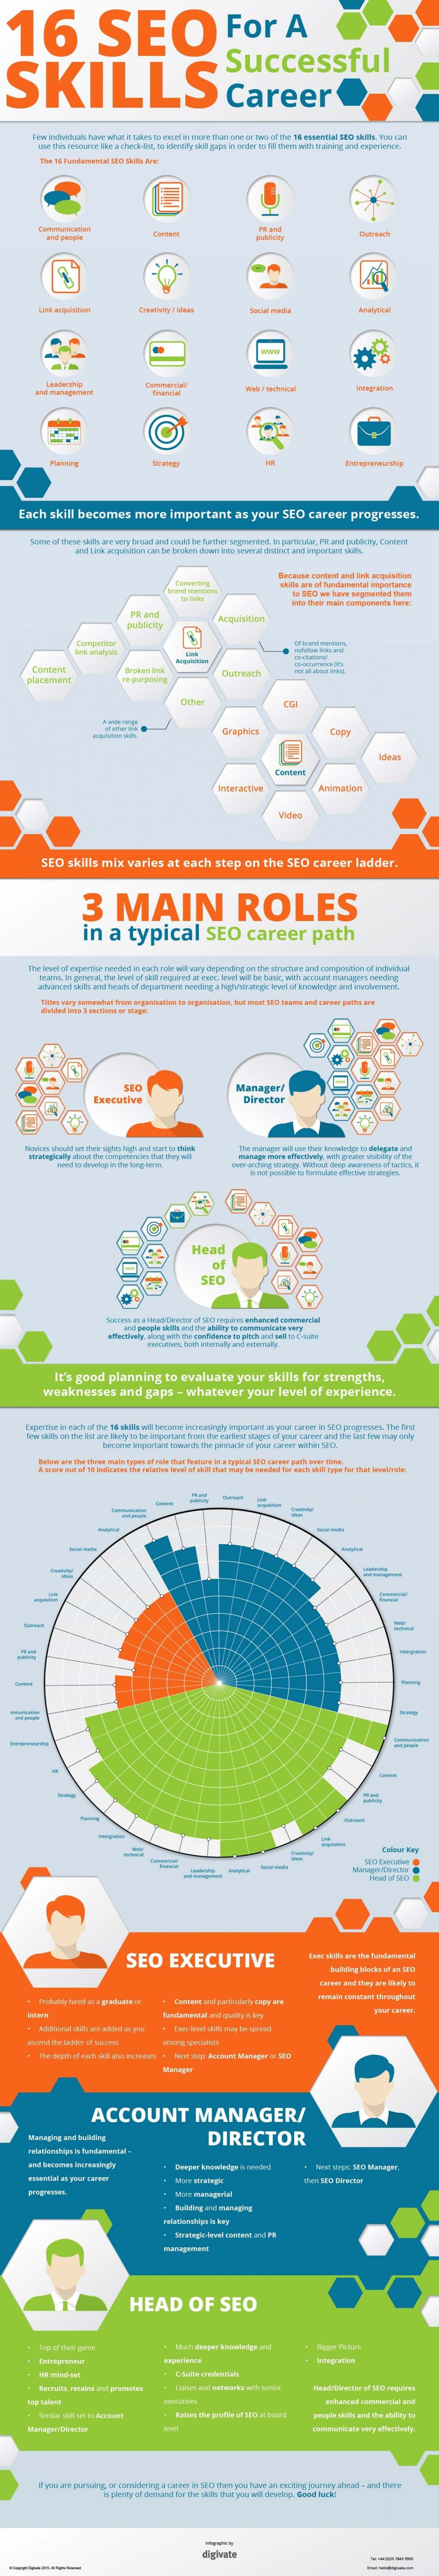 16 key skills for a career in seo infographic smart insights the 16 seo skills for career success